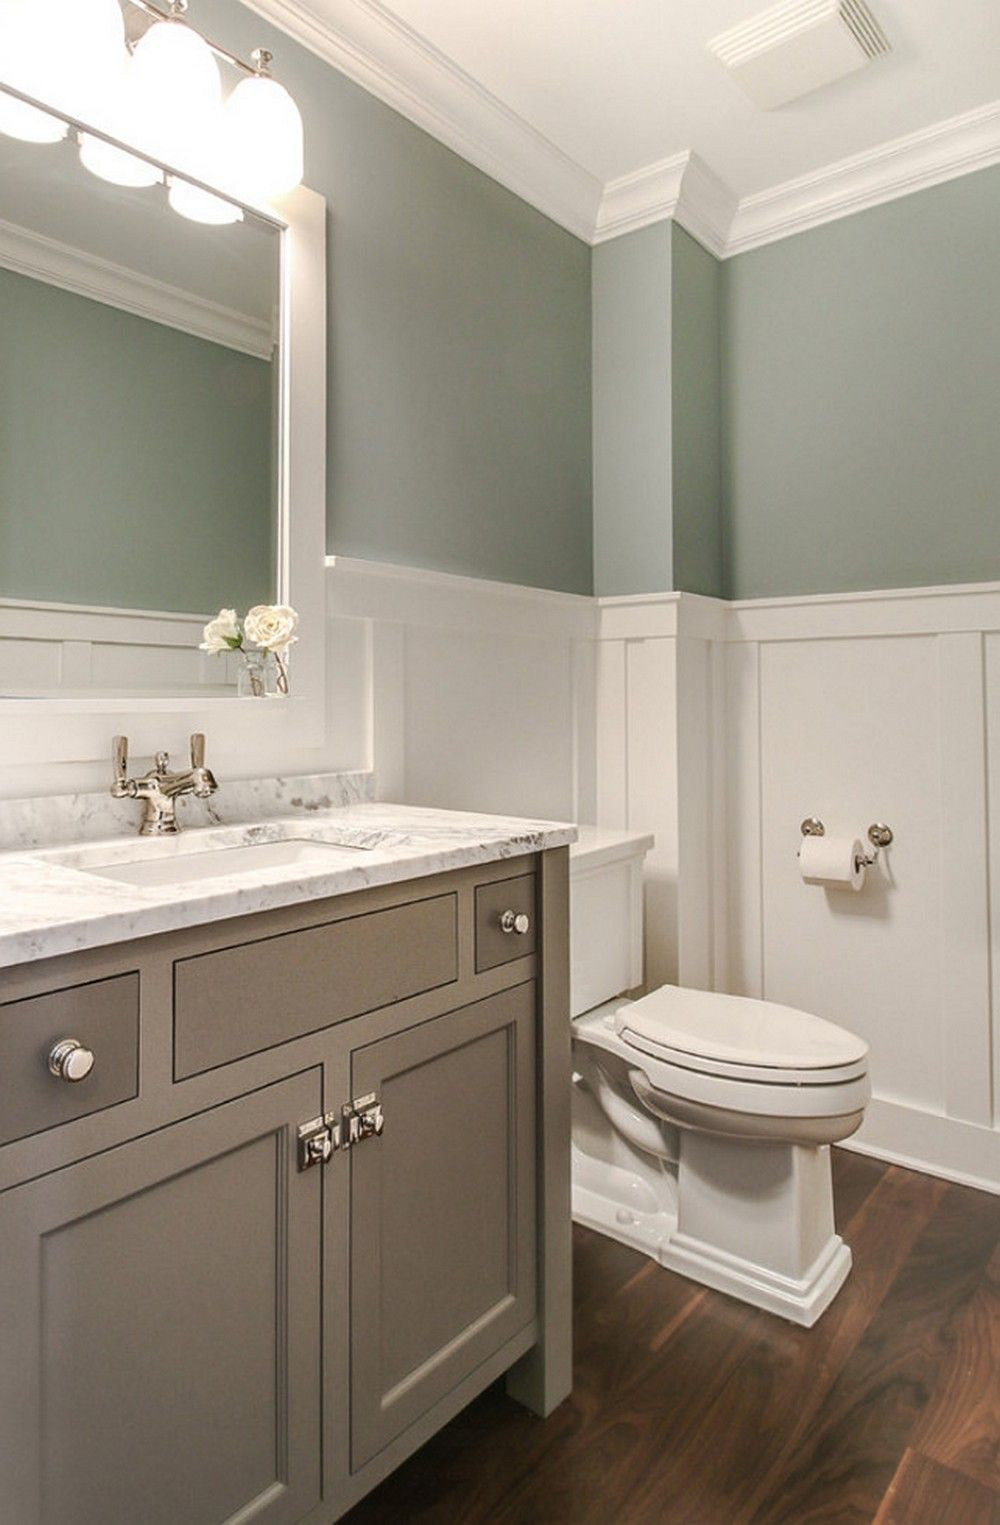 before best decor makeover story remodels tips decorating after master makeovers design digest bathroom architectural